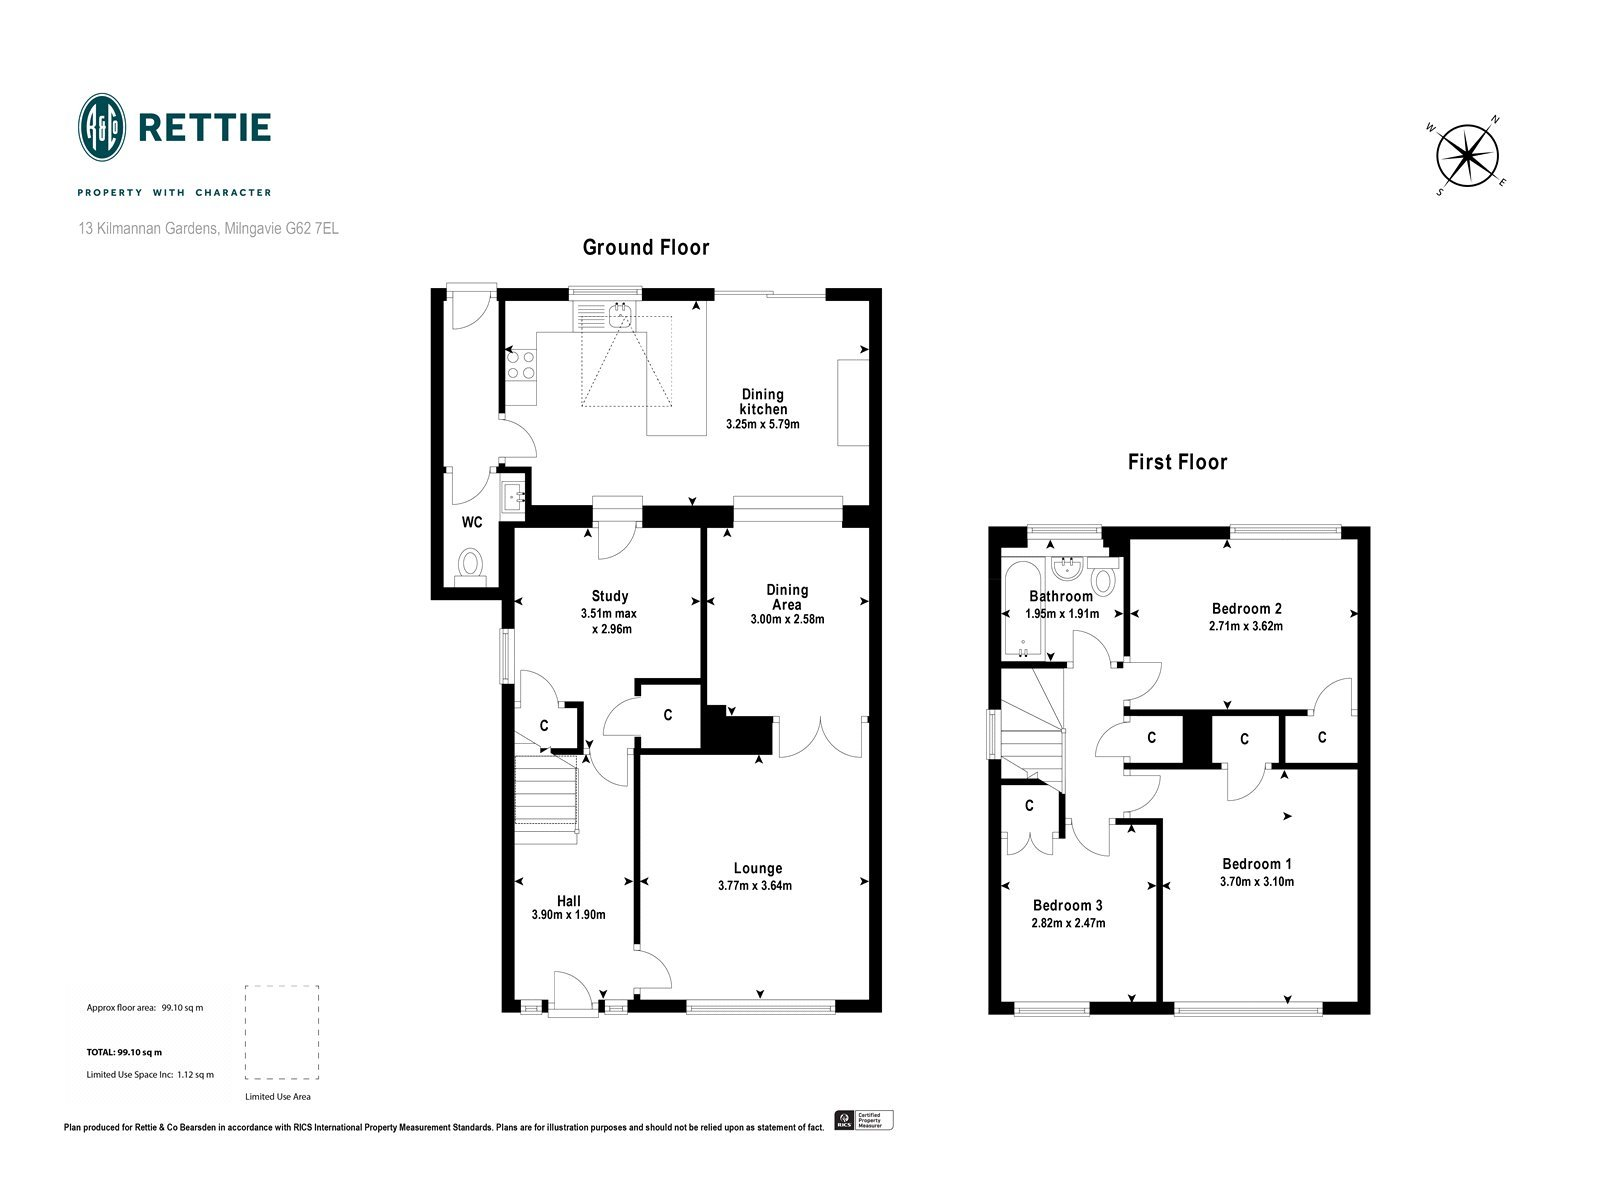 Floorplans for Kilmannan Gardens, Milngavie, G62